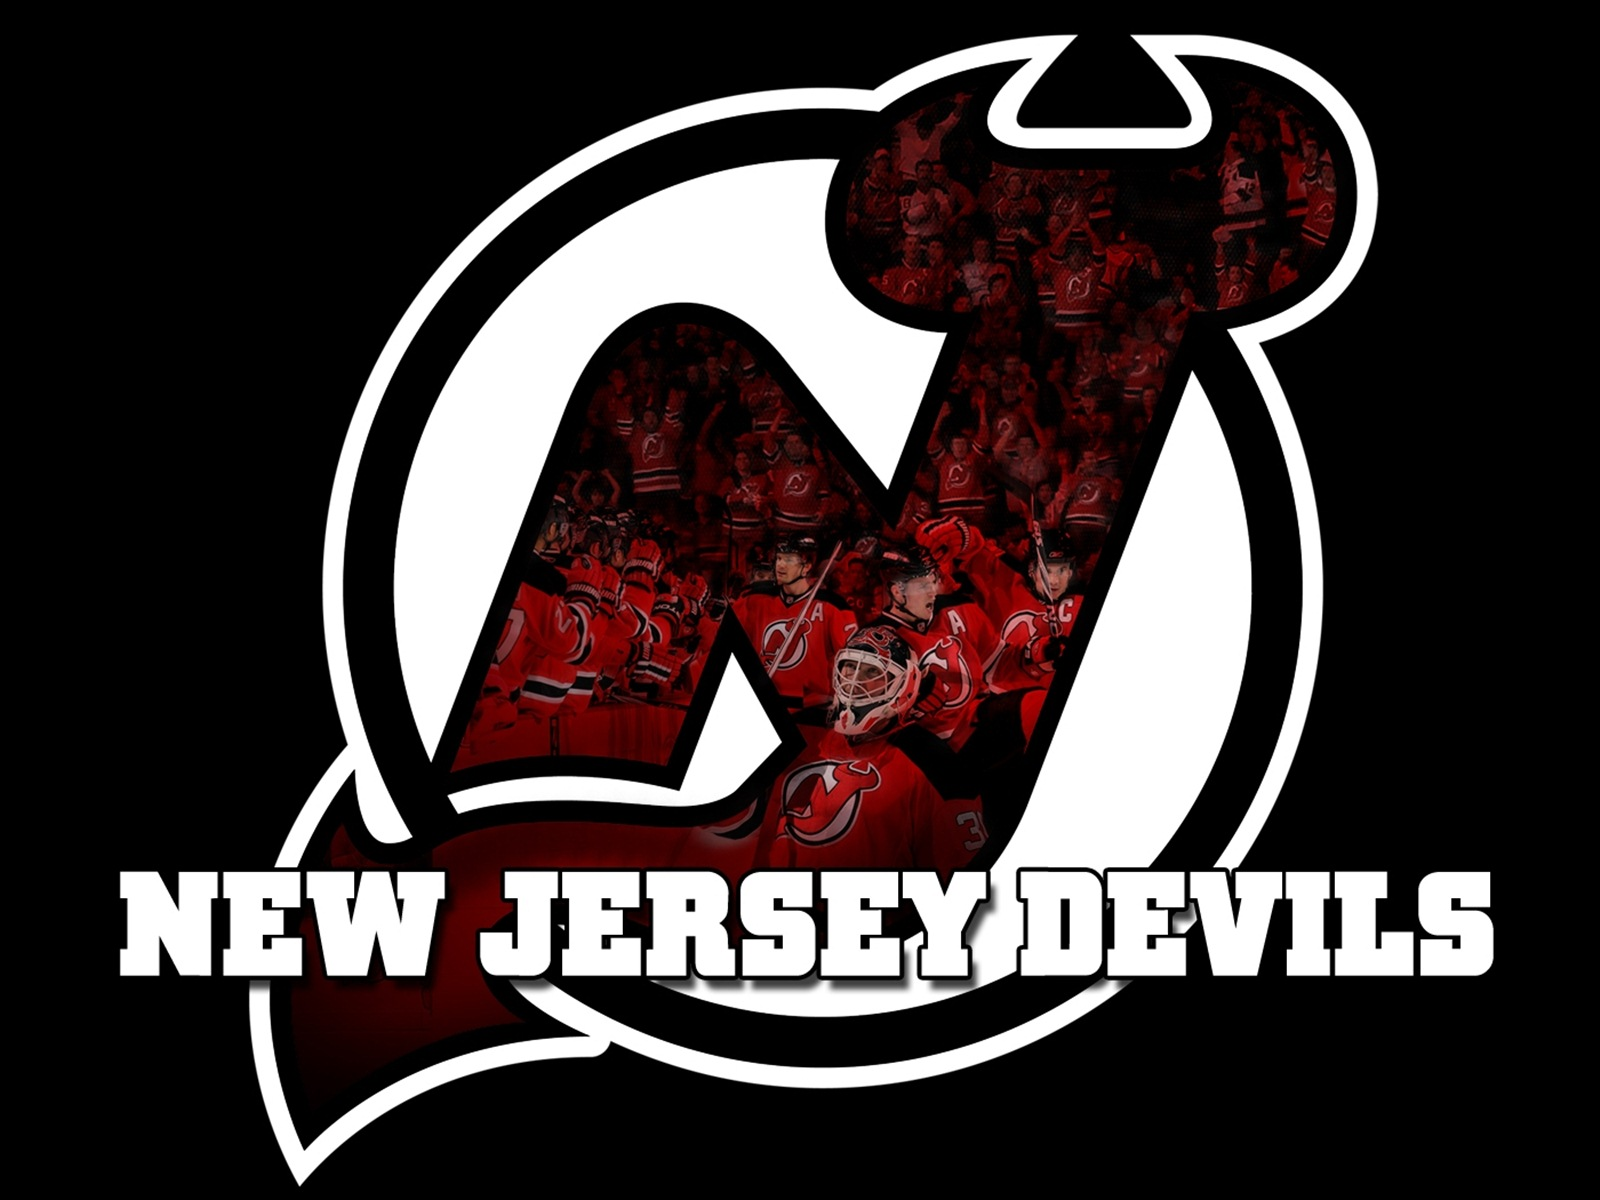 1600x1200 - New Jersey Devils Wallpapers 26